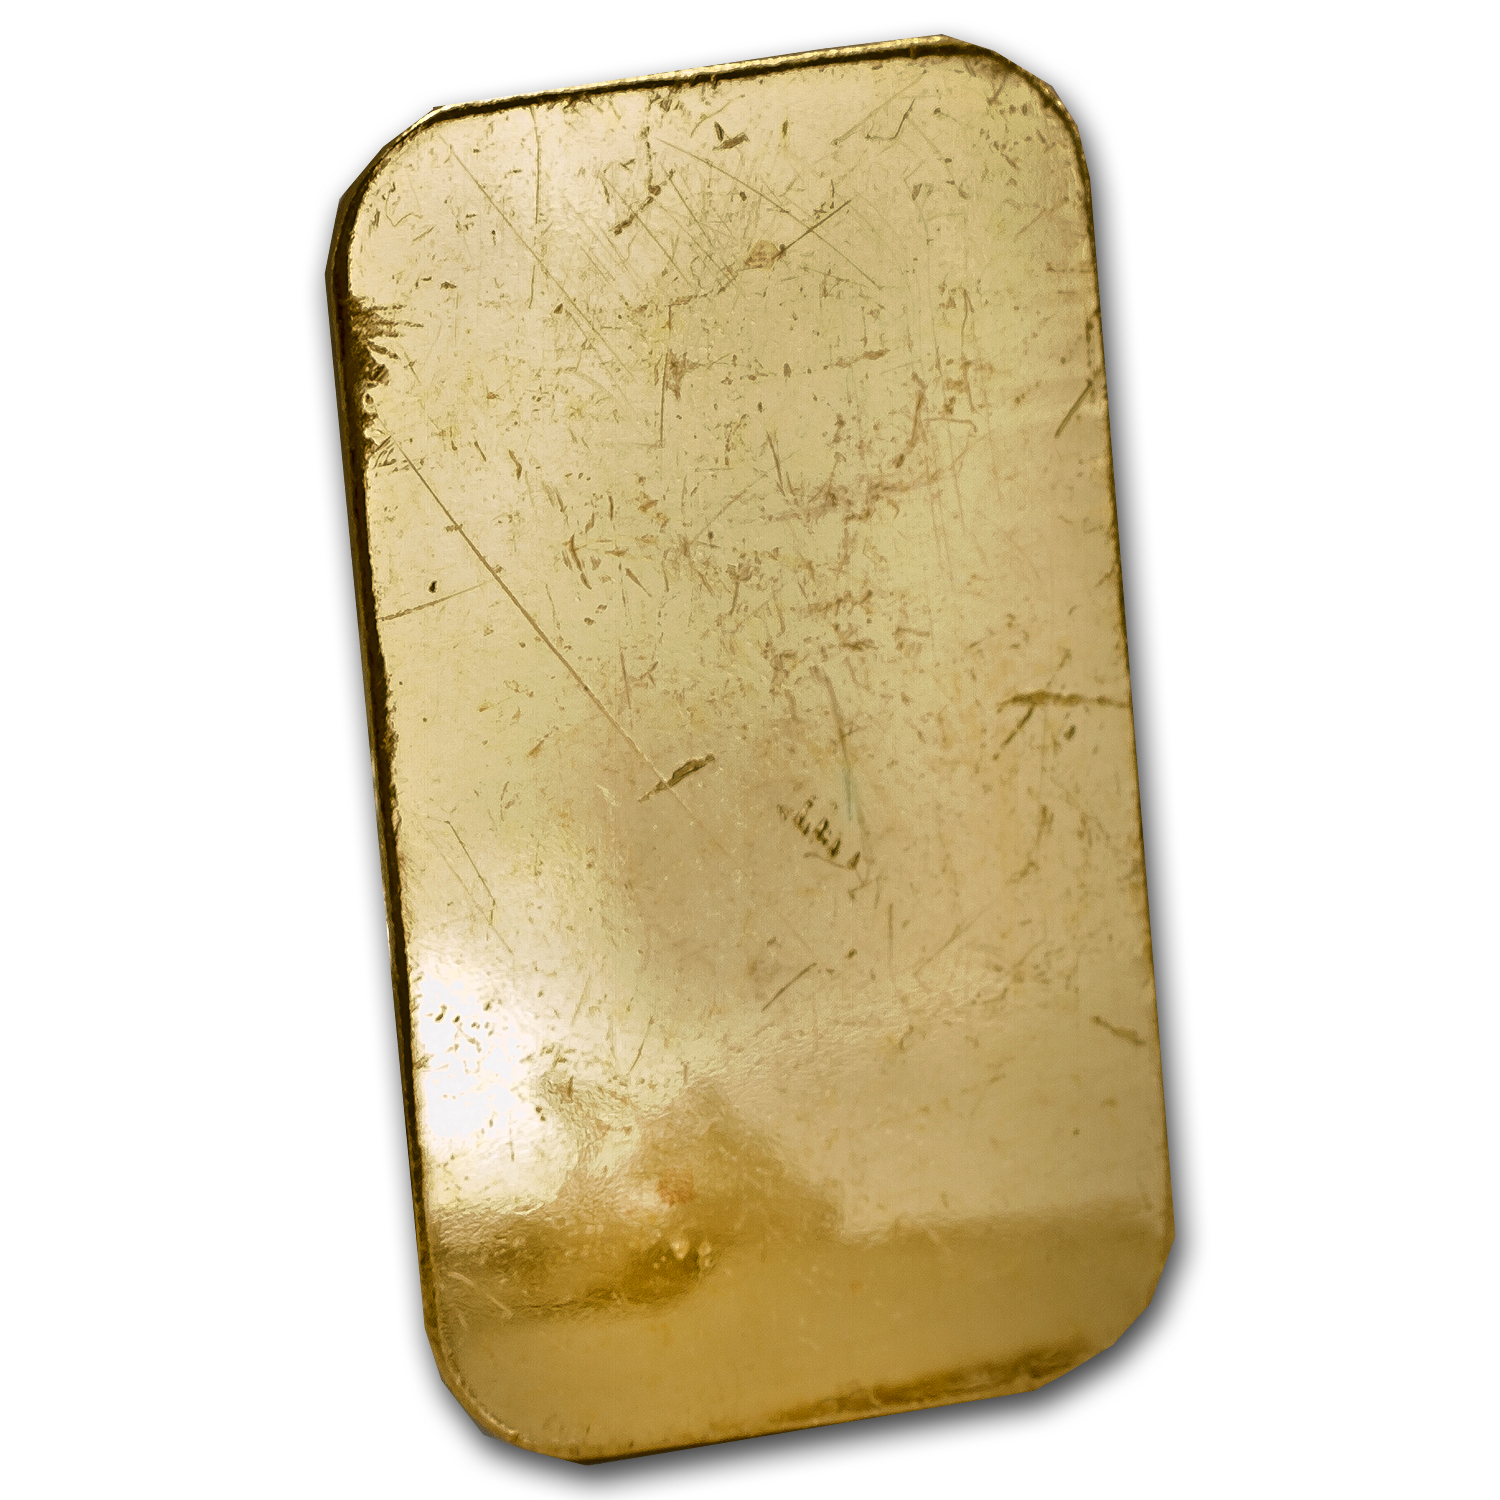 10 gram Gold Bar - UBS (No Assay Card)